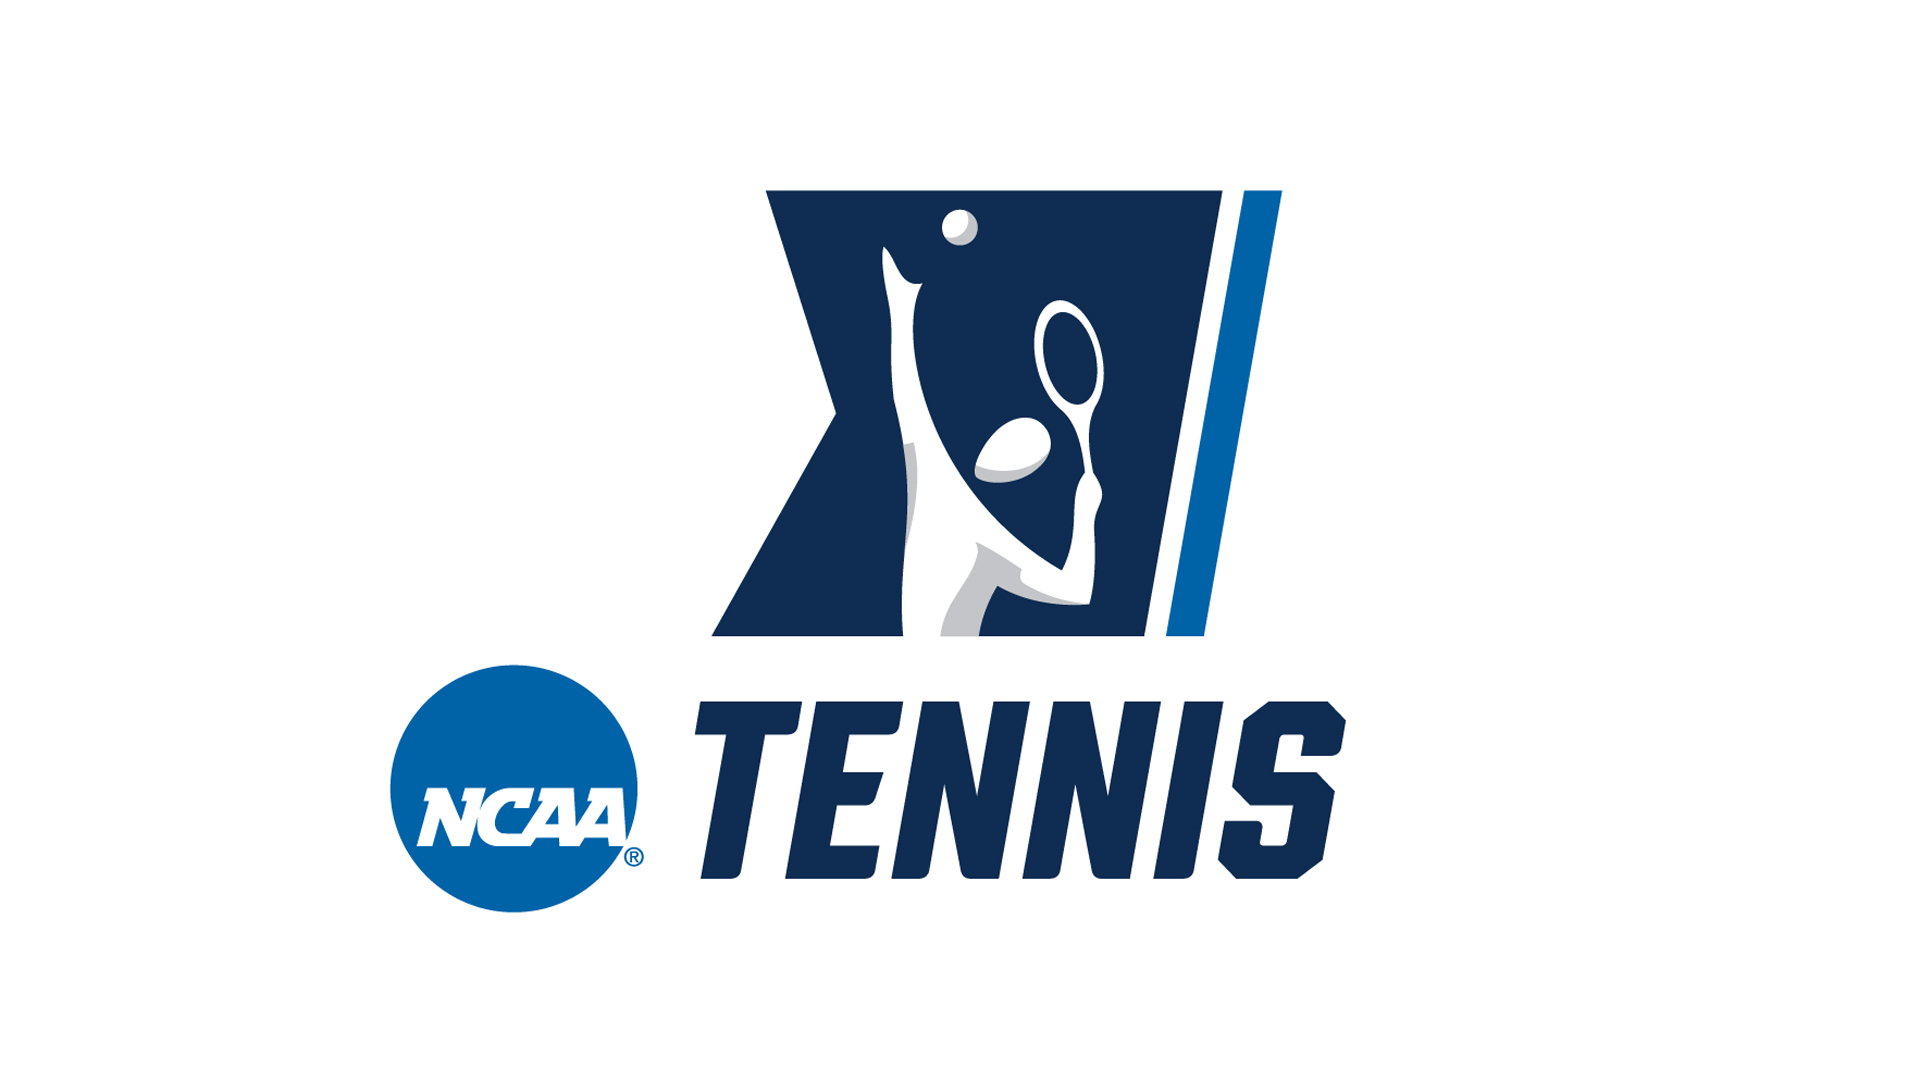 NCAA Tennis Logo